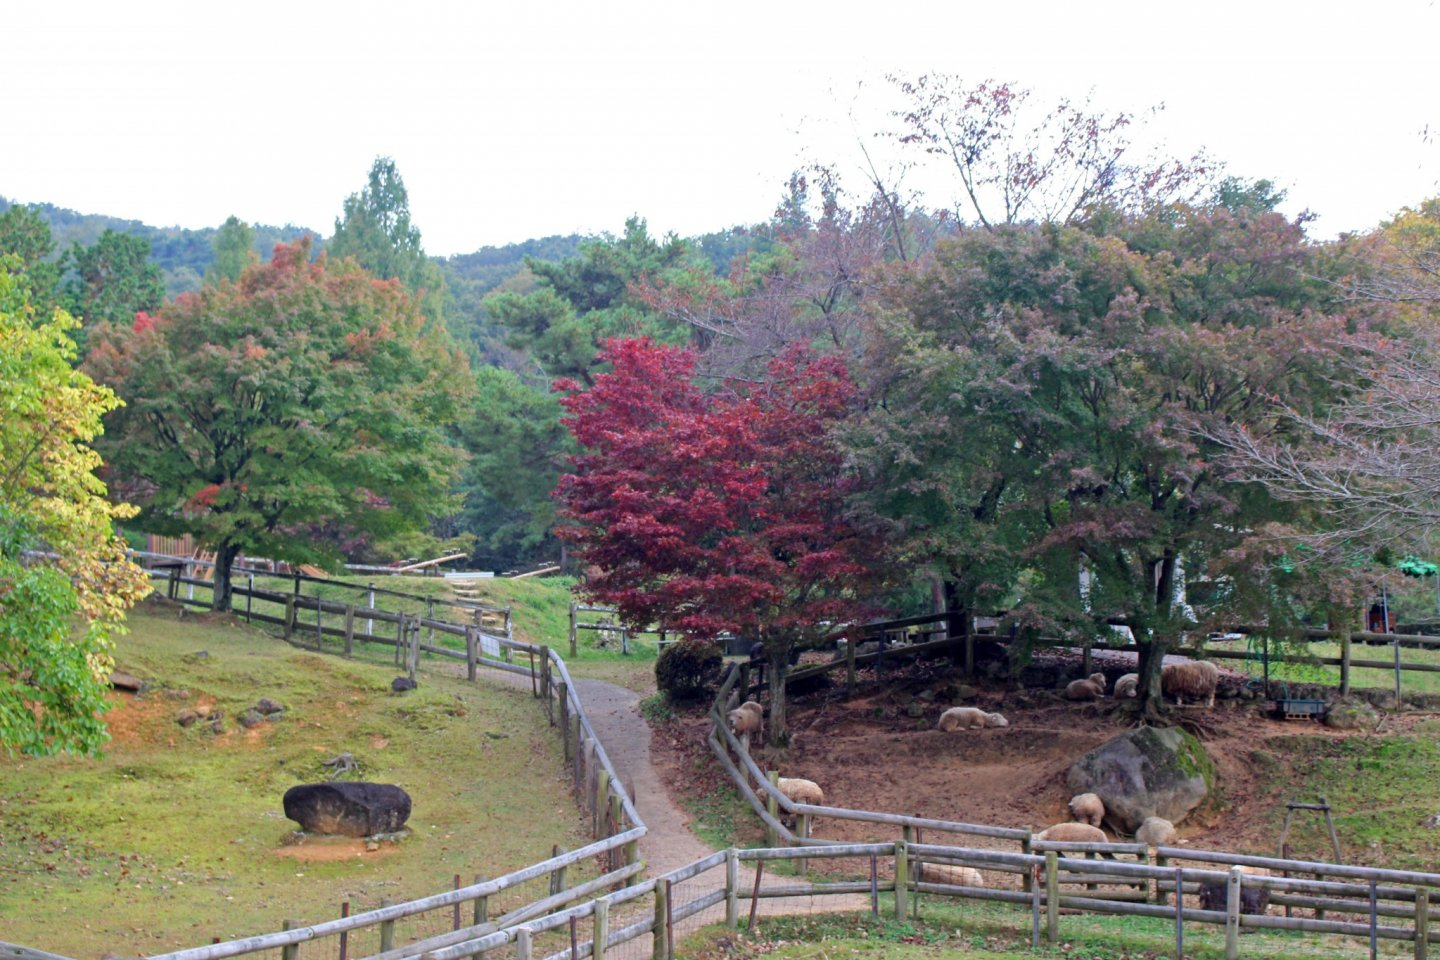 Autumn foliage at the Mémé Makiba's sheep pen. The Mémé Makiba is a small farm that allows visitors to feed and pet the animals and see how wool is turned into yarn and finished goods